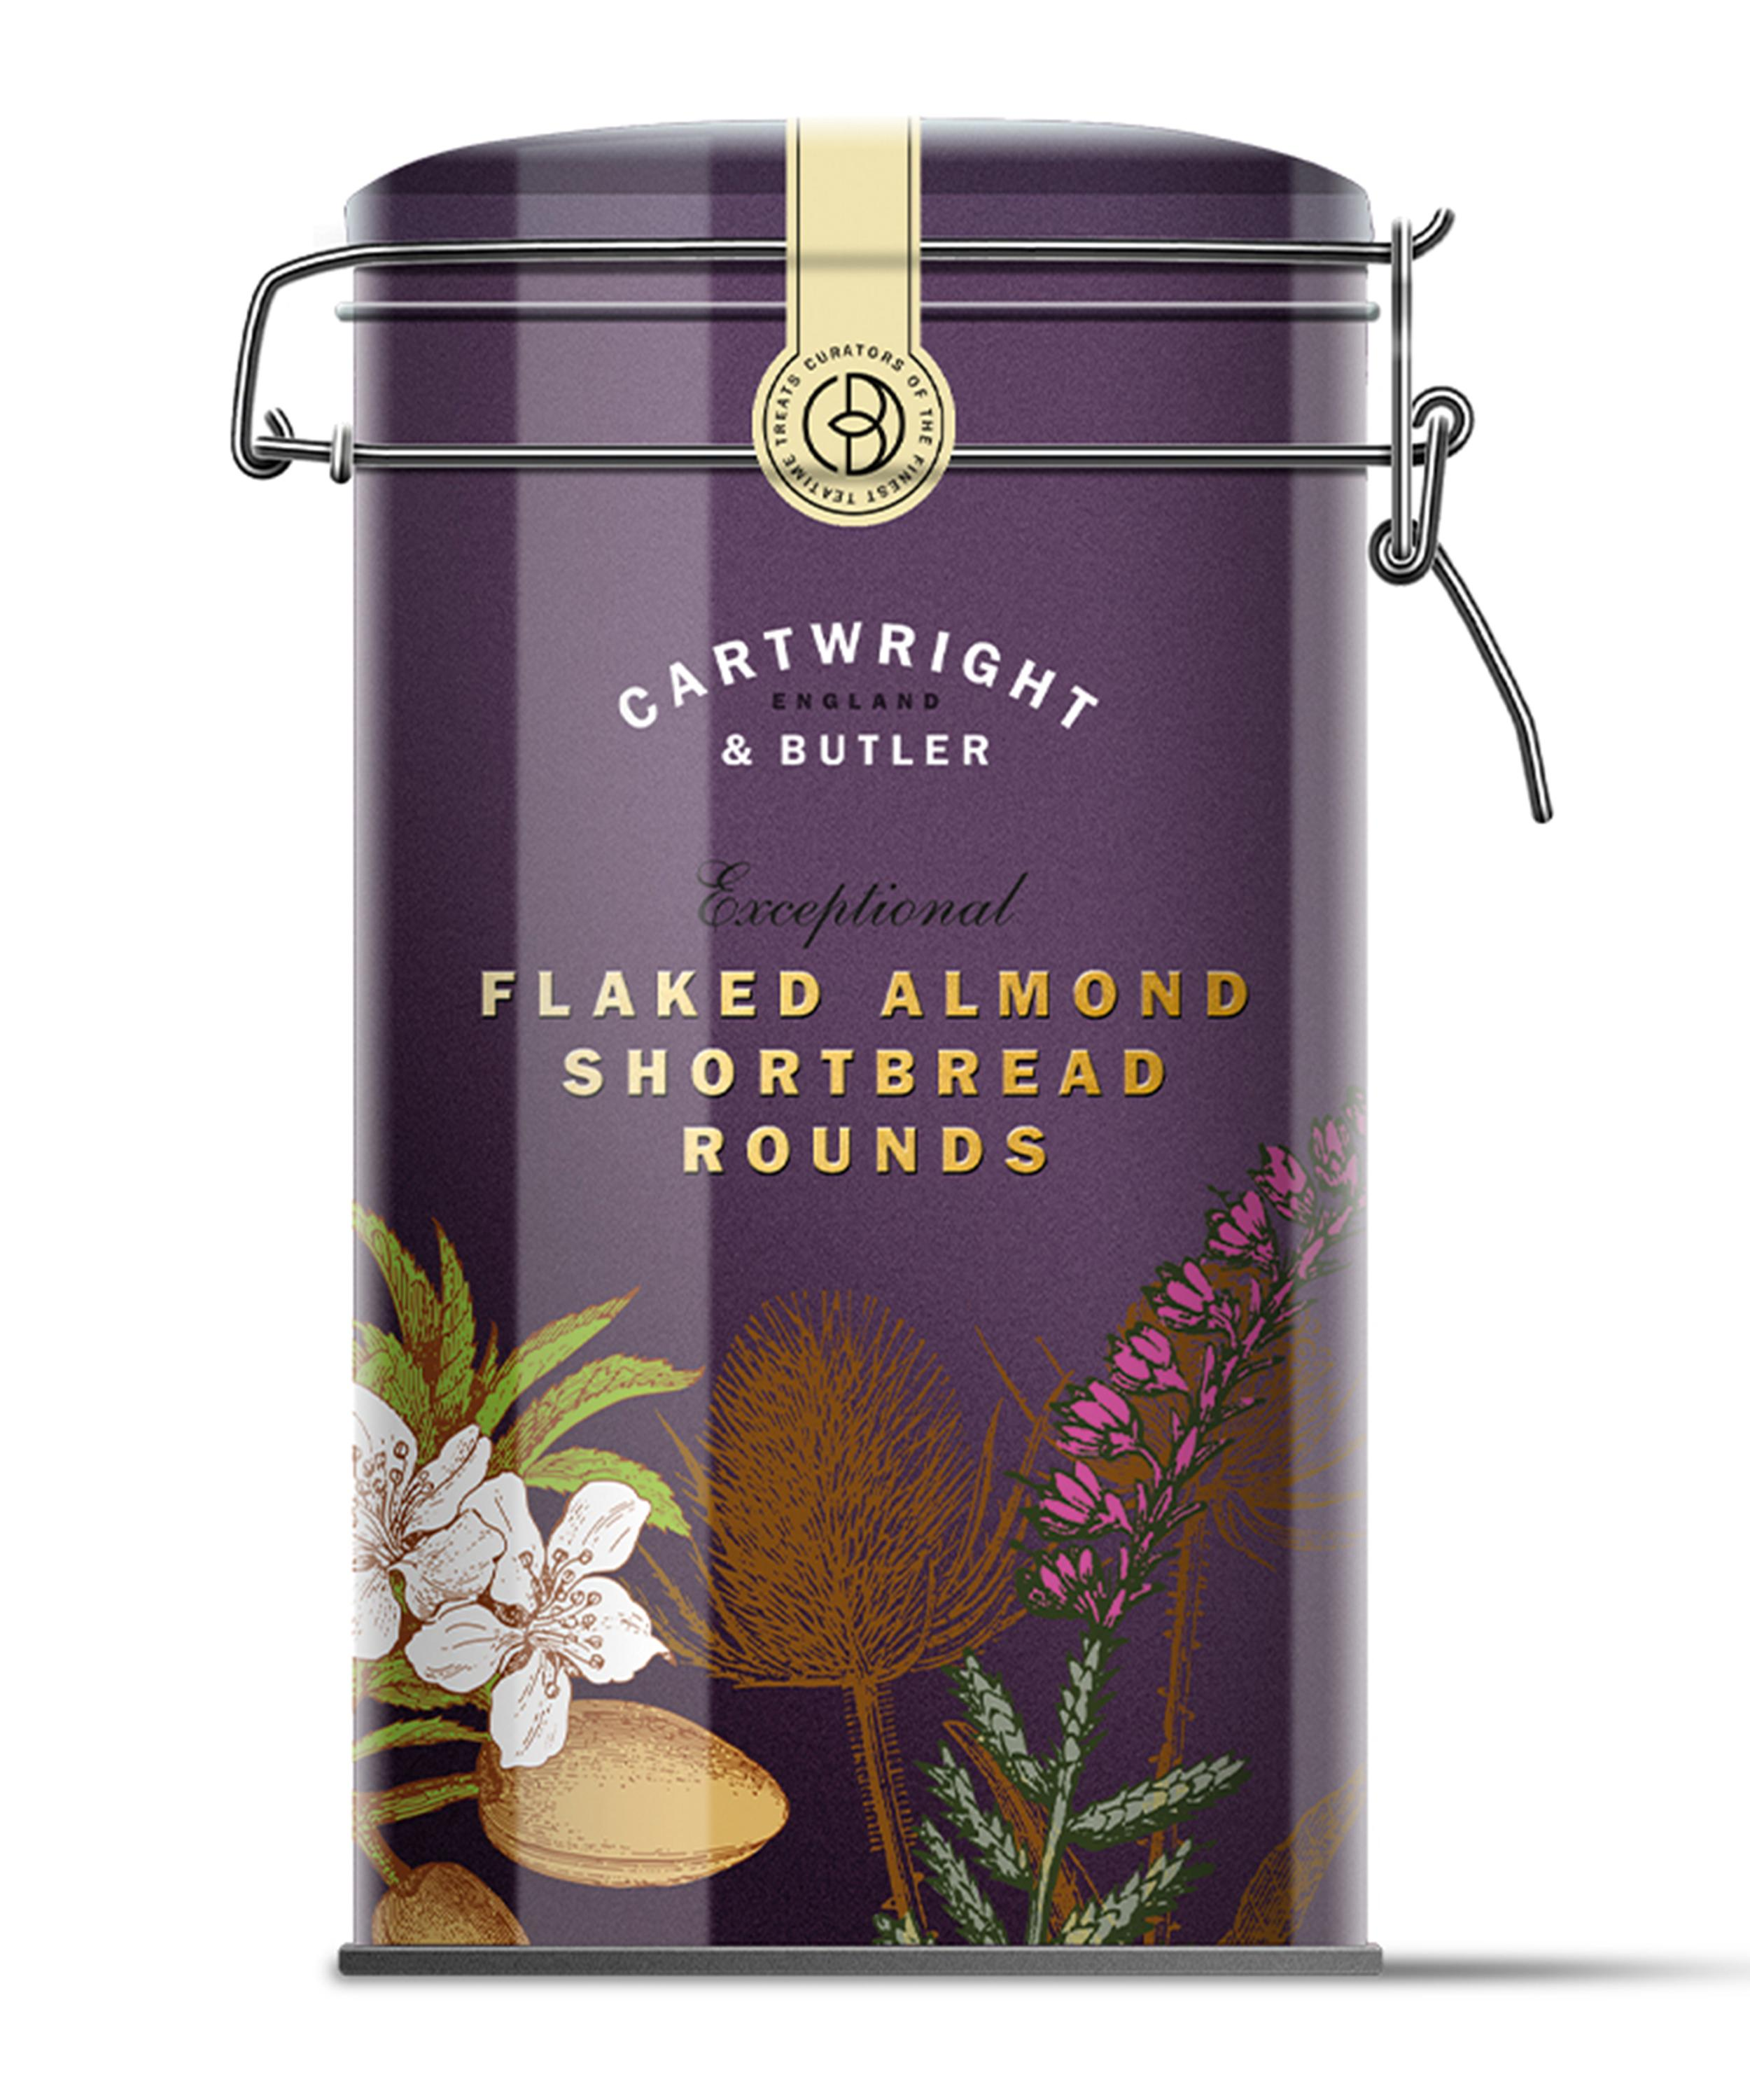 CARTWRIGHT & BUTLER FLAKED ALMOND SHORTBREAD ROUNDS TIN (200G)-0